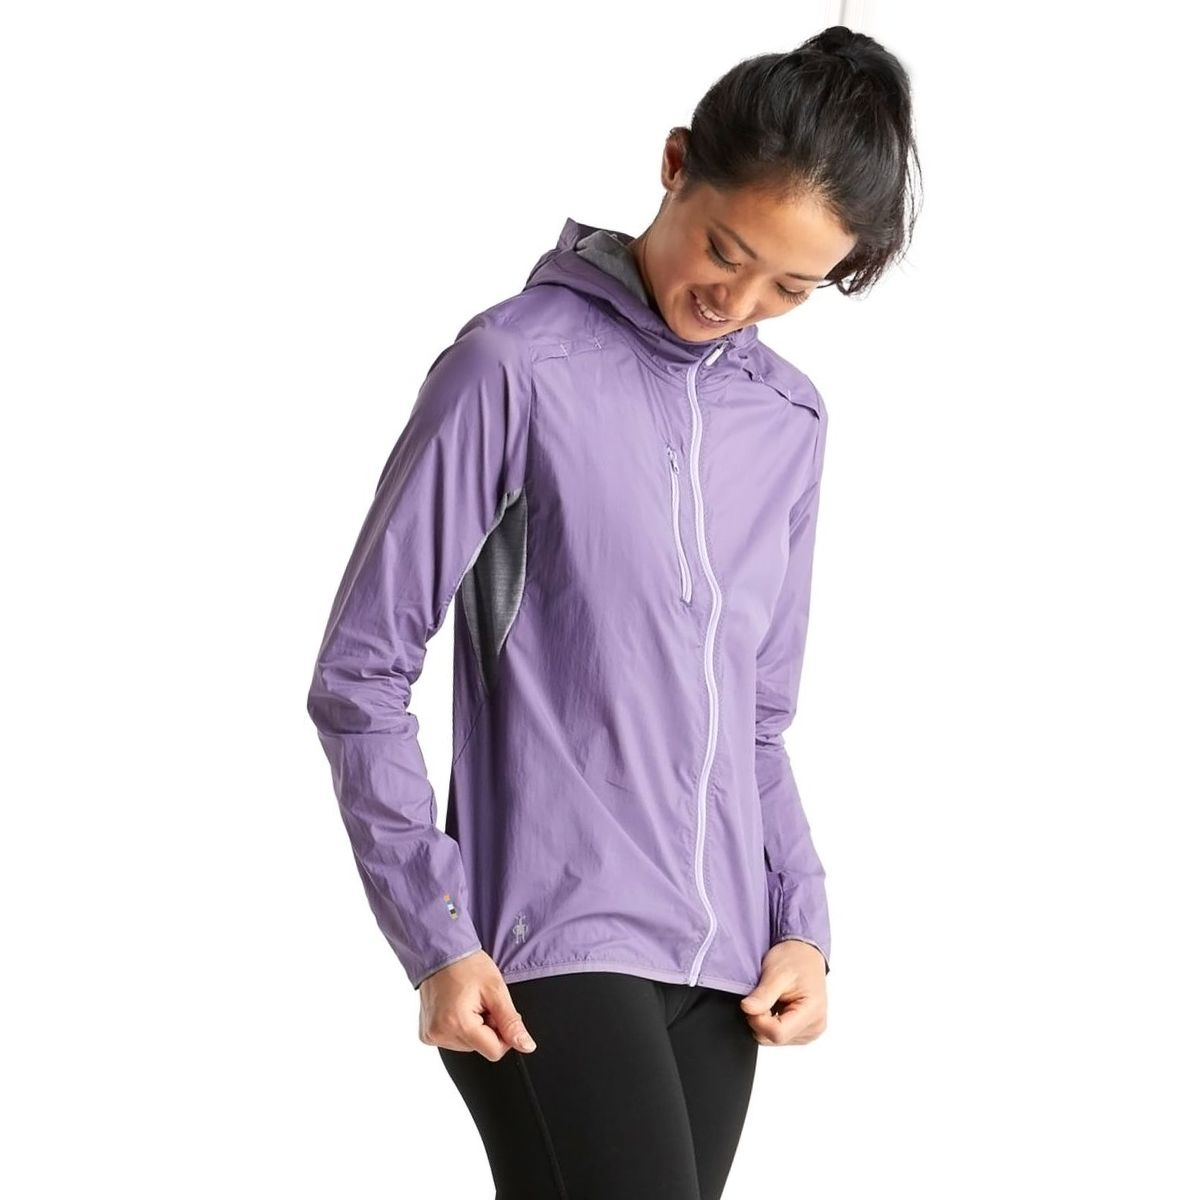 Smartwool Merino Sport Ultra Light Hooded Jacket - Women's